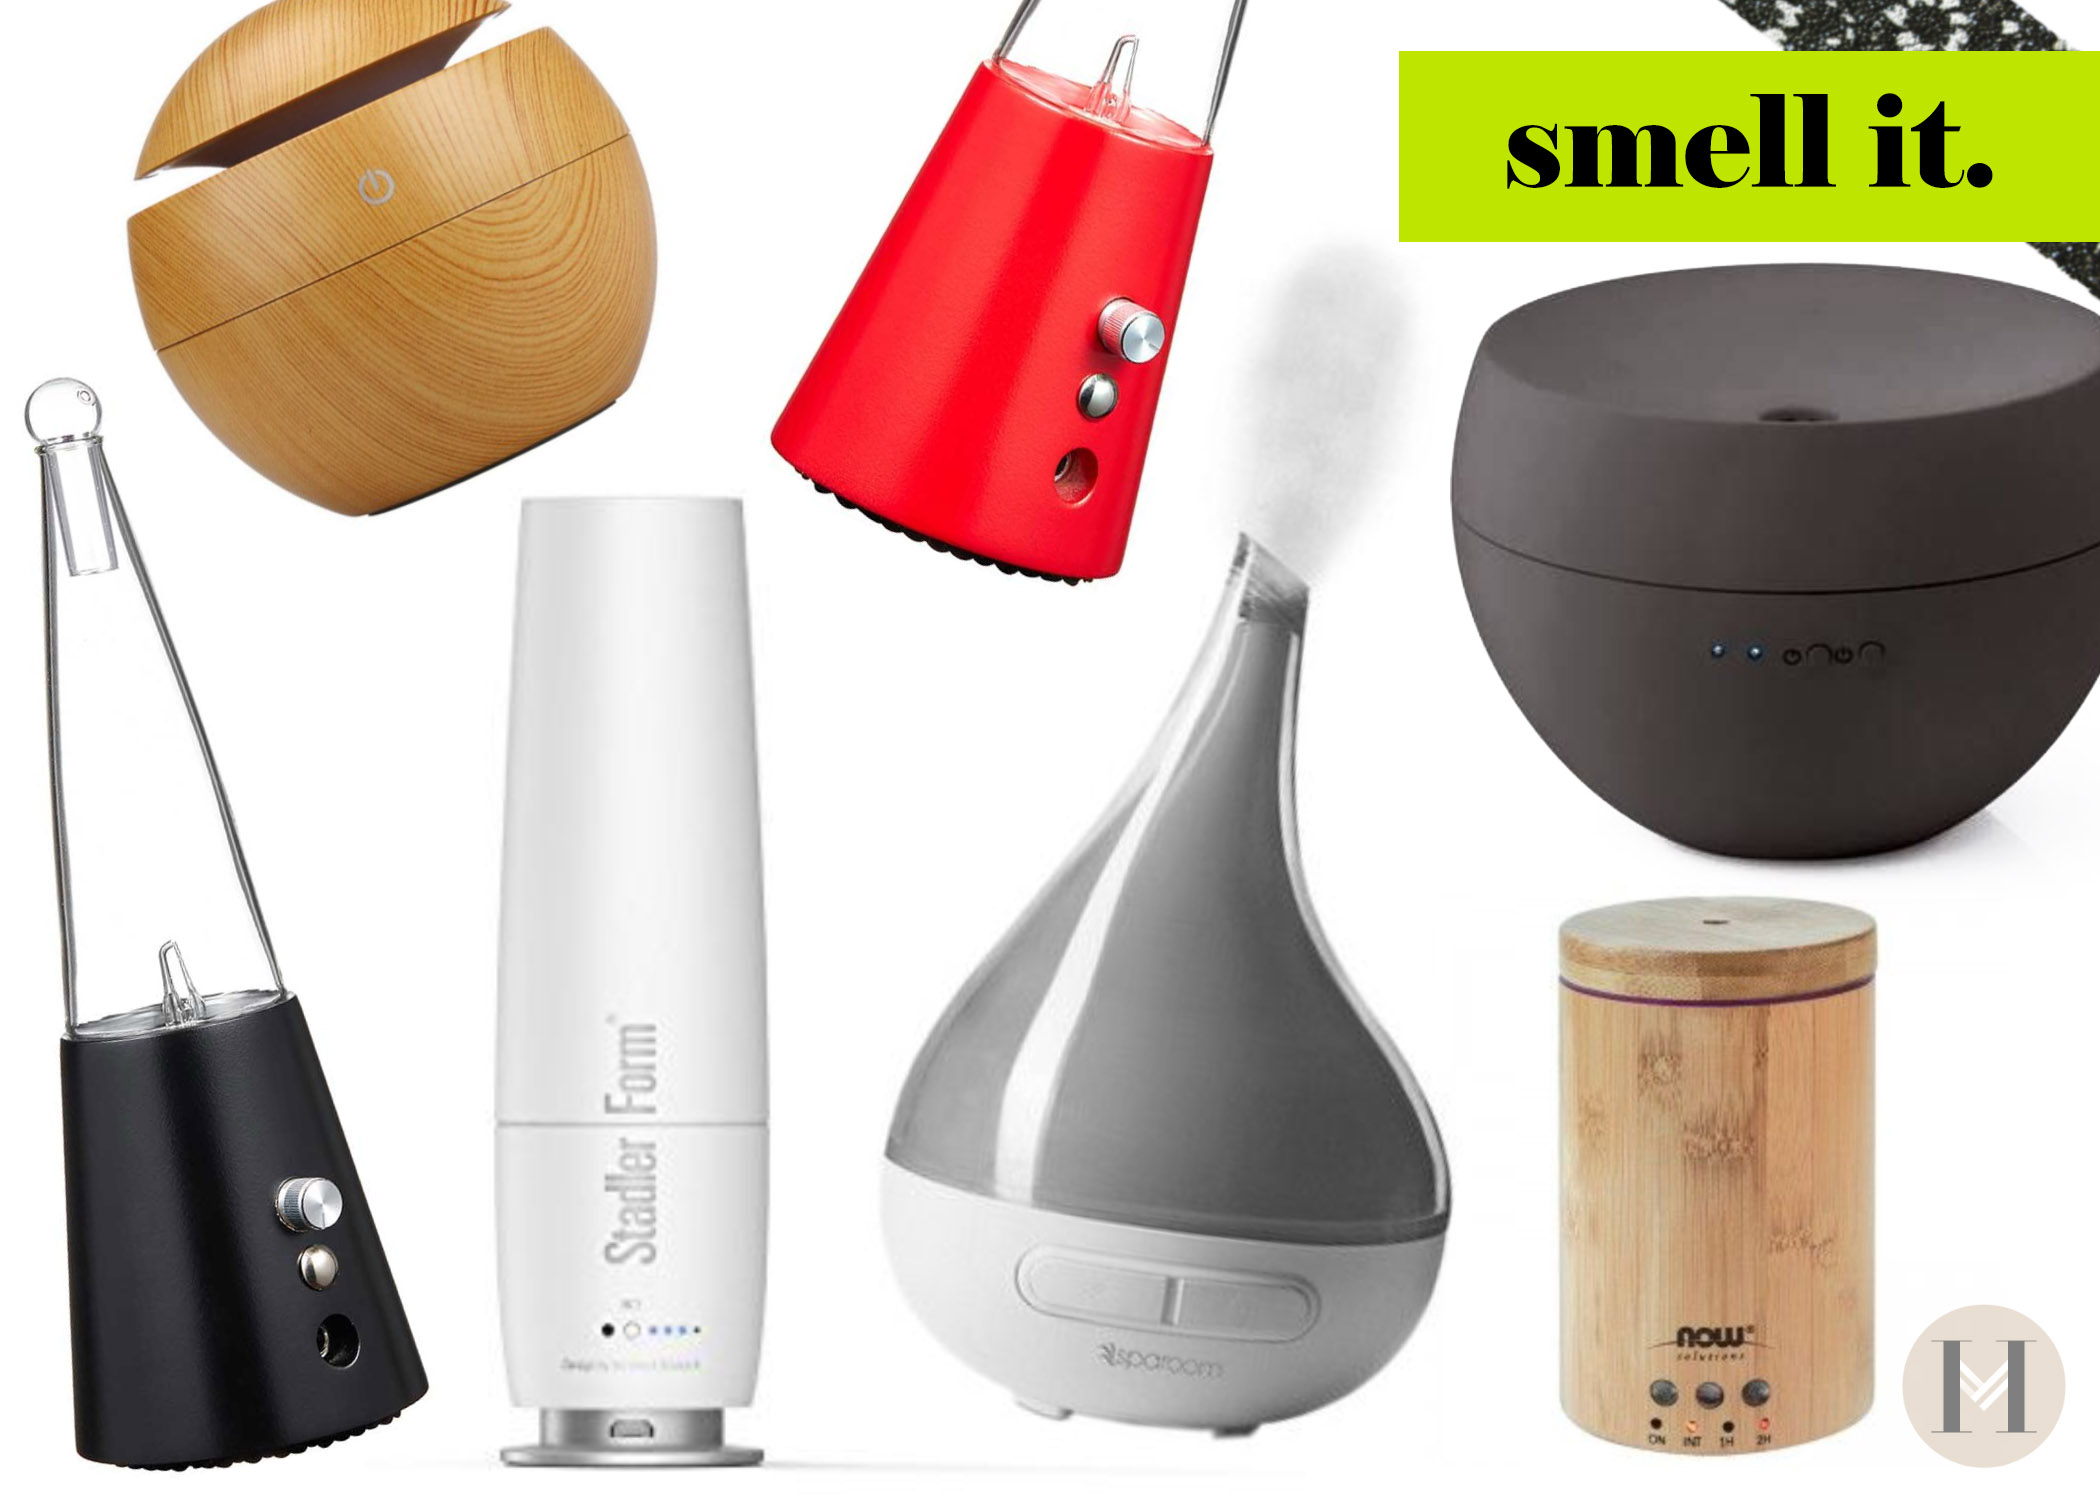 Scents help create a freshness for your house. Try oil diffusers Hautemommie writes.